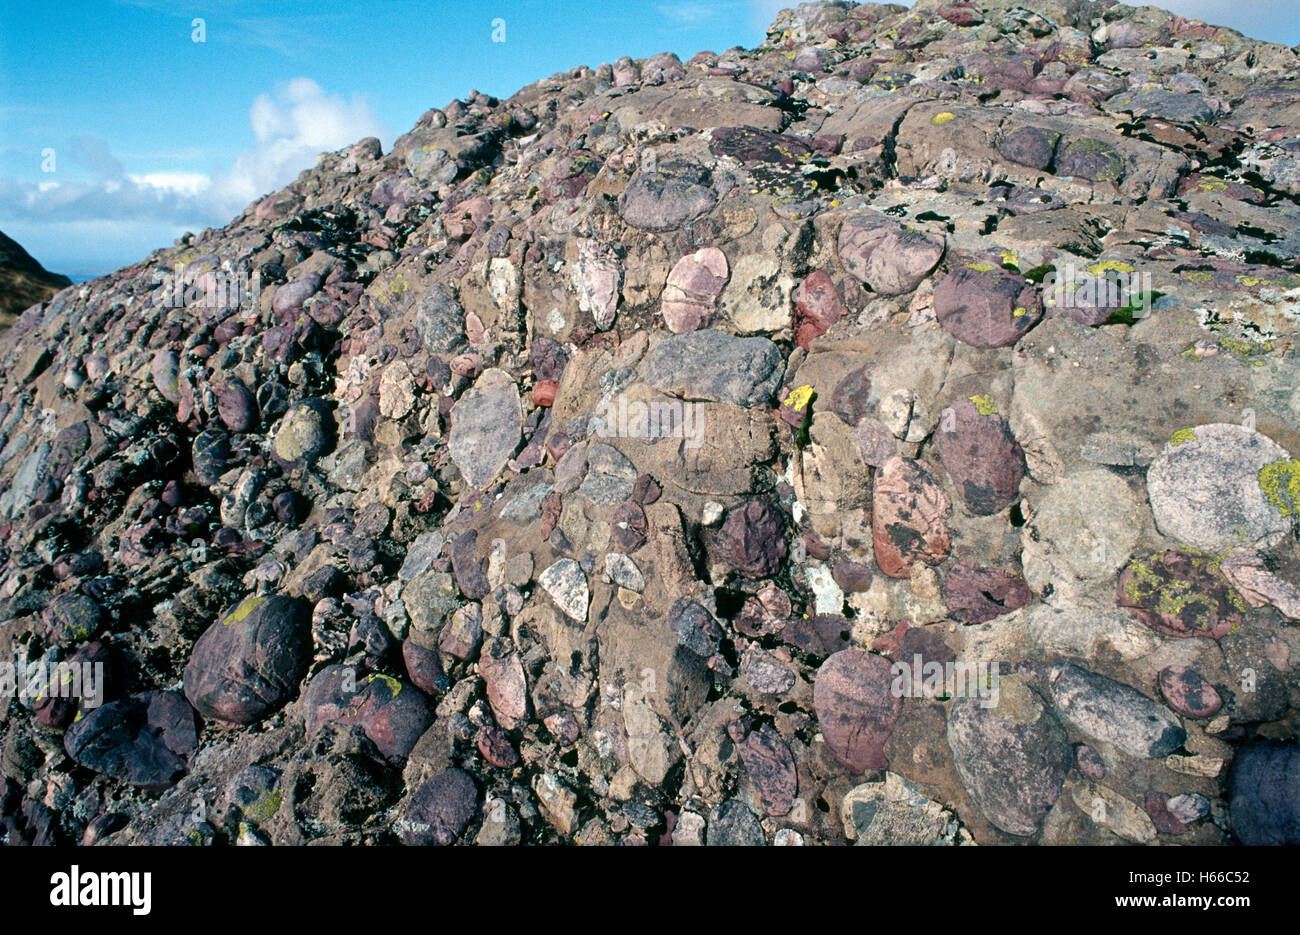 Sandstone conglomerate rock above Killary Harbour, County Glalway, Ireland. - Stock Image